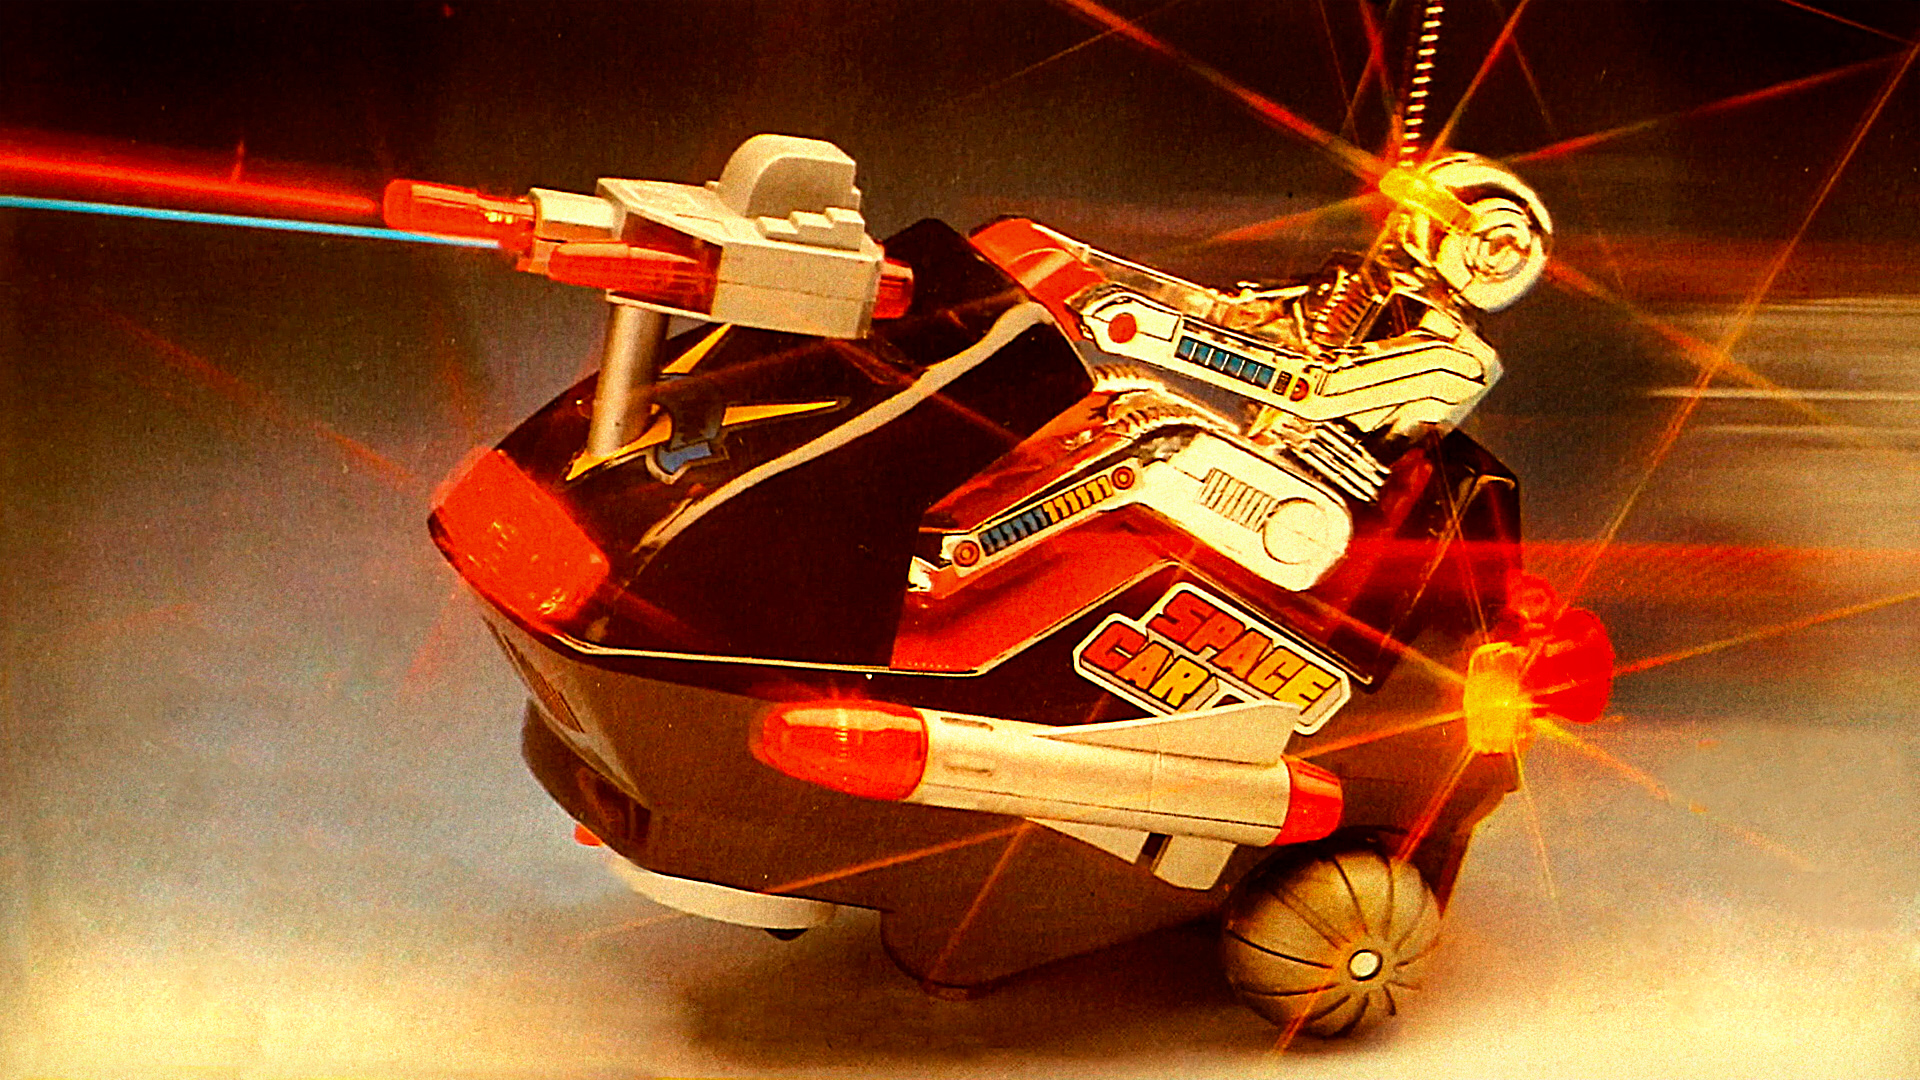 The Robots are on Patrol! - Vintage 1985 Space Raid Car Toy